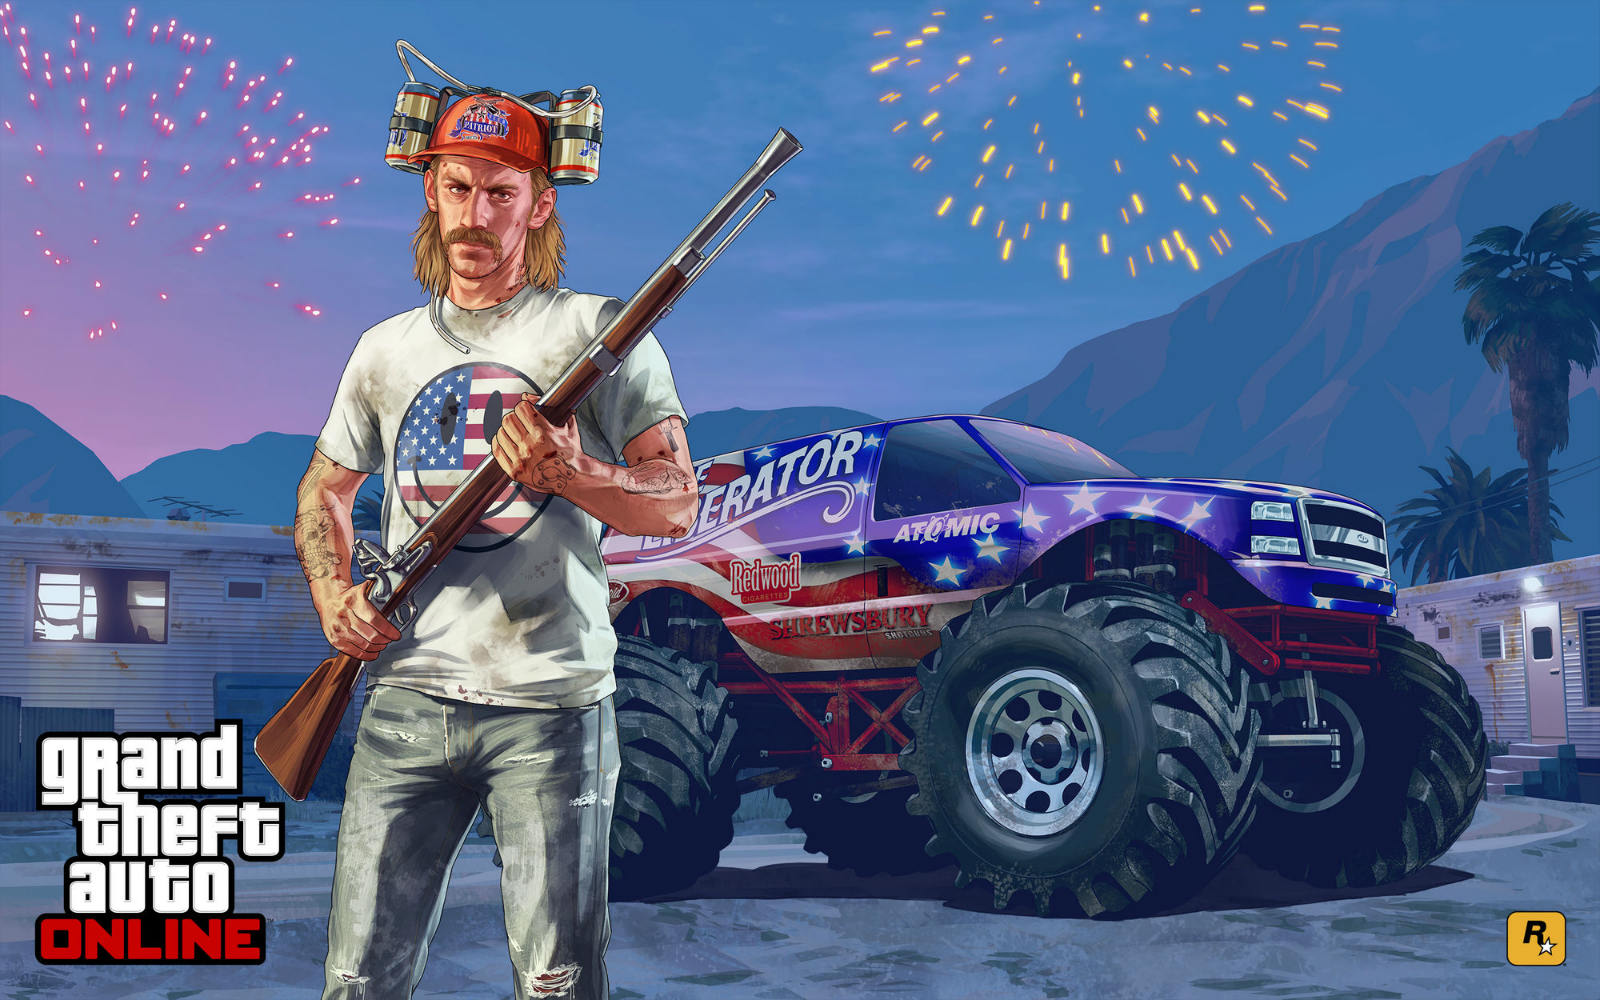 Four years on, 'GTA Online' is still a money-spinner